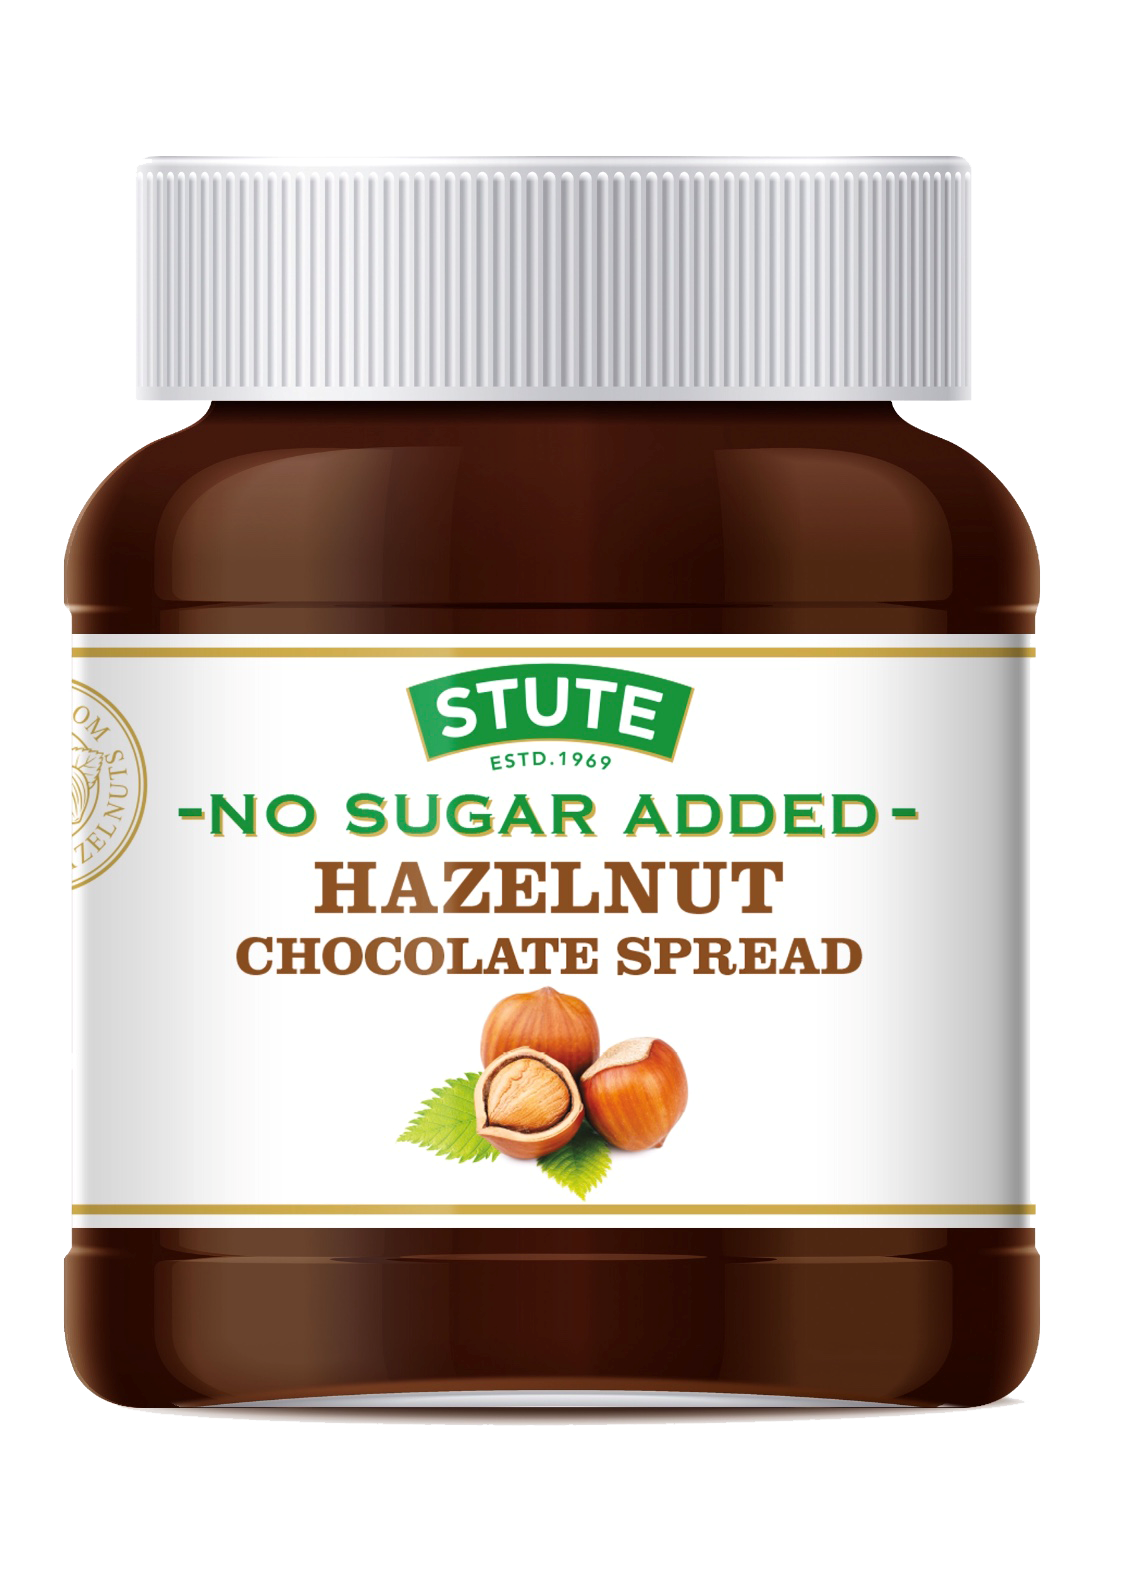 No Sugar Added Hazelnut Chocolate Spread